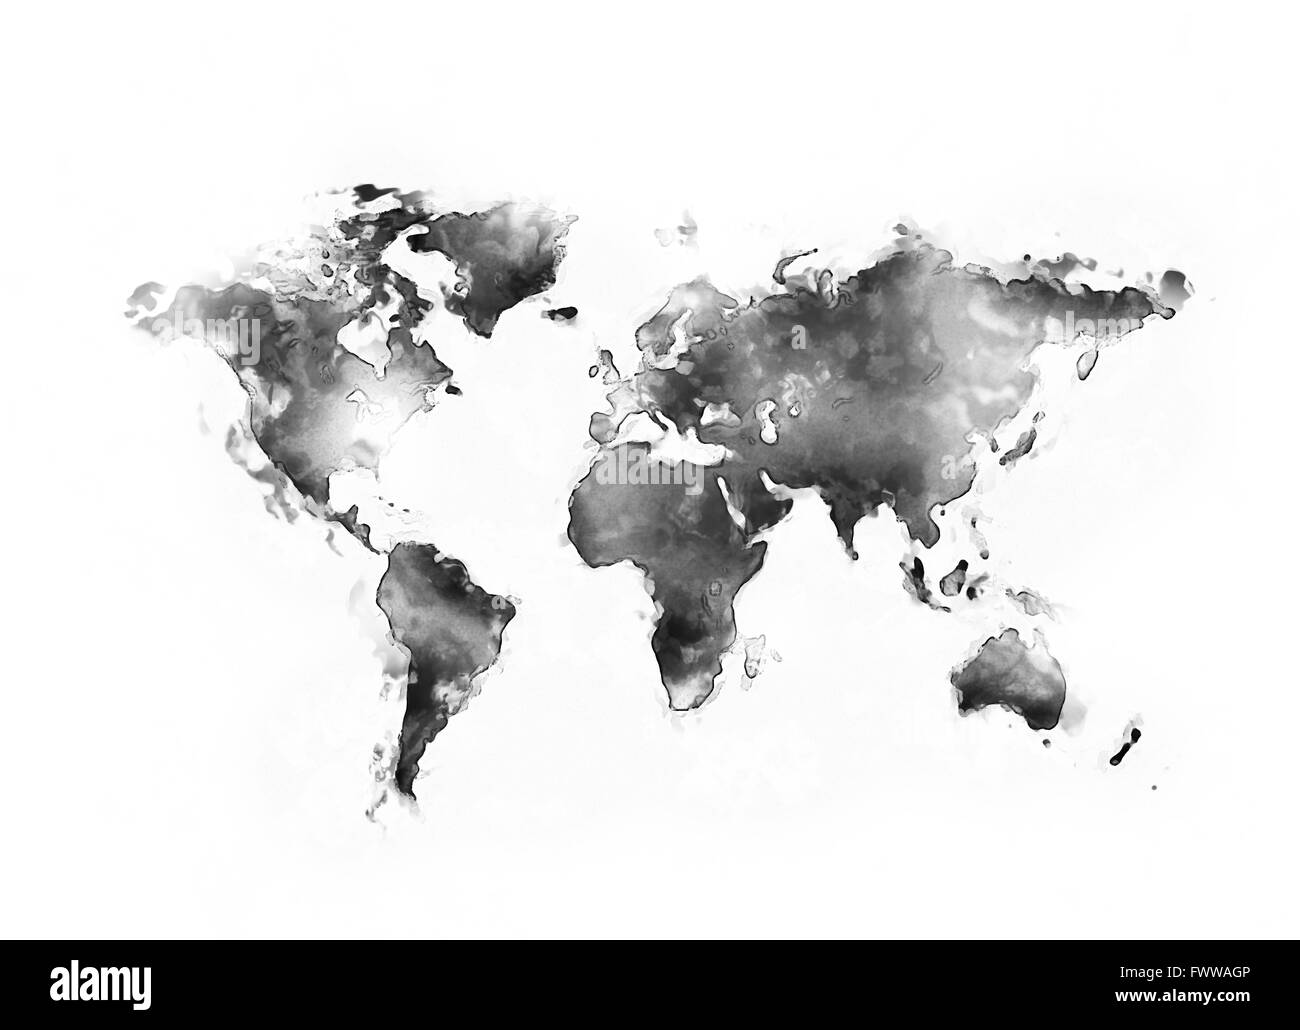 Abstract world map painting o white background stock photo abstract world map painting o white background gumiabroncs Choice Image